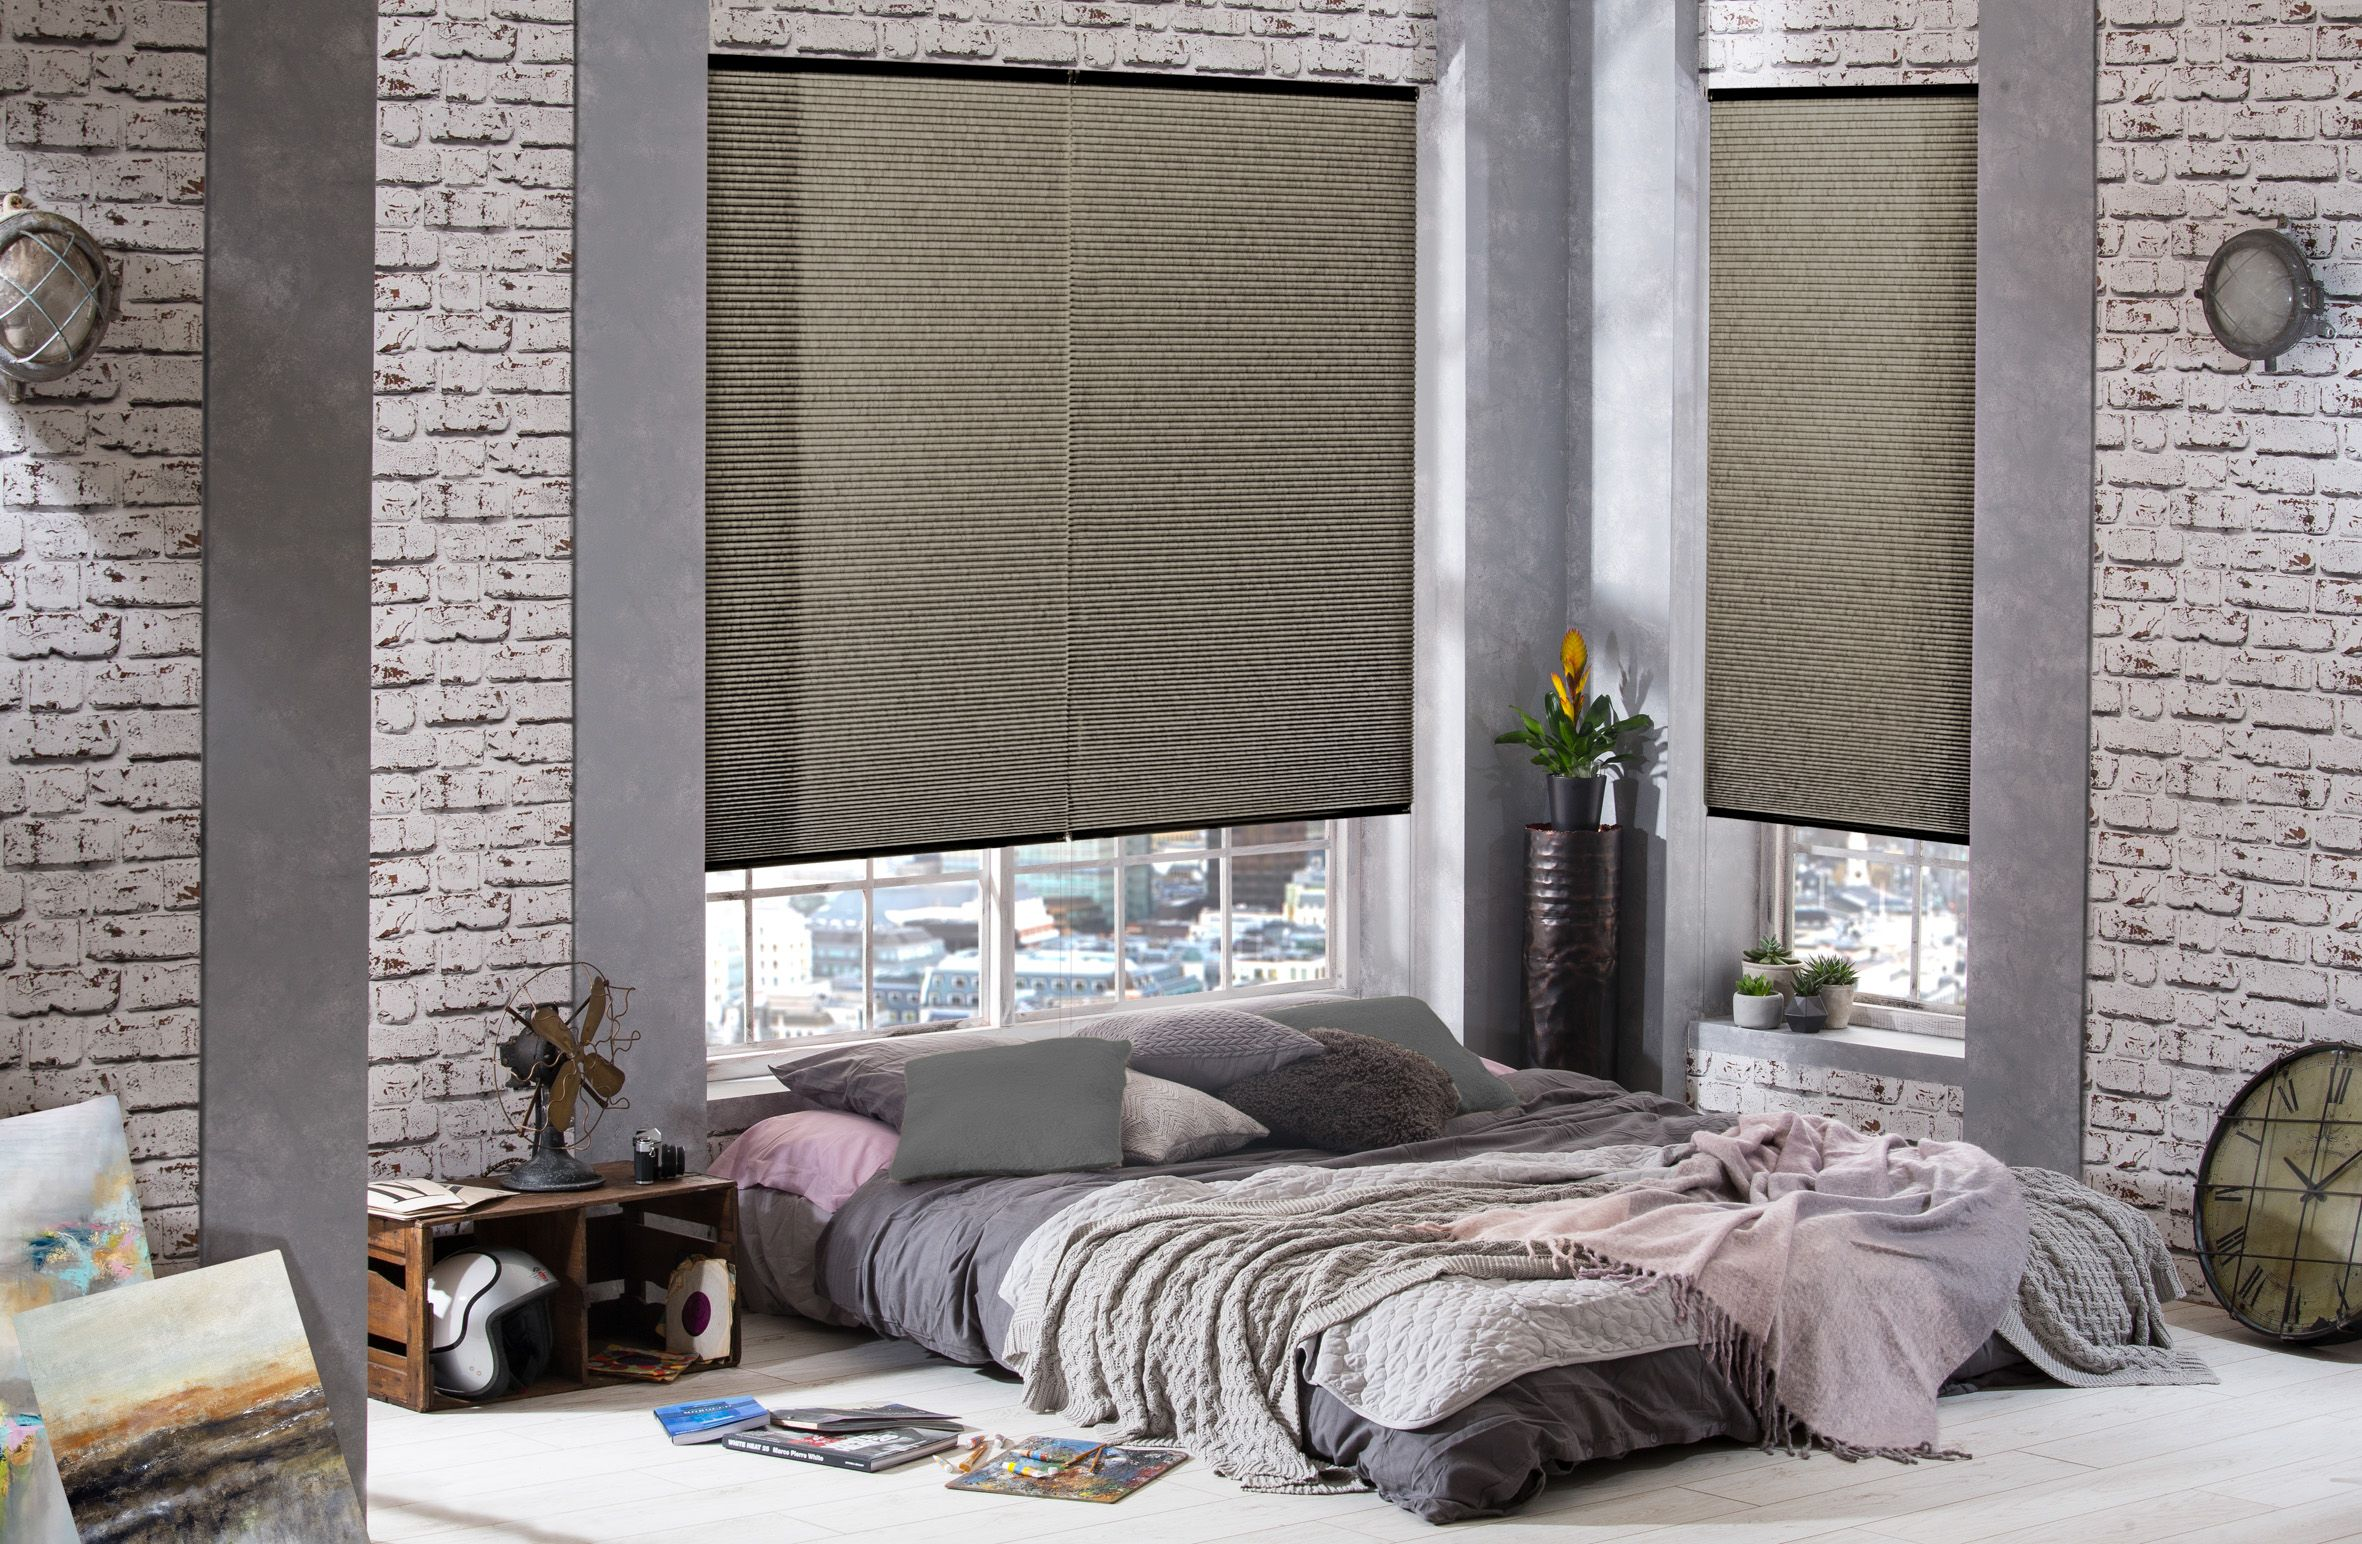 Bed near window design  hive blinds from style studio grey blinds bedroom blinds modern